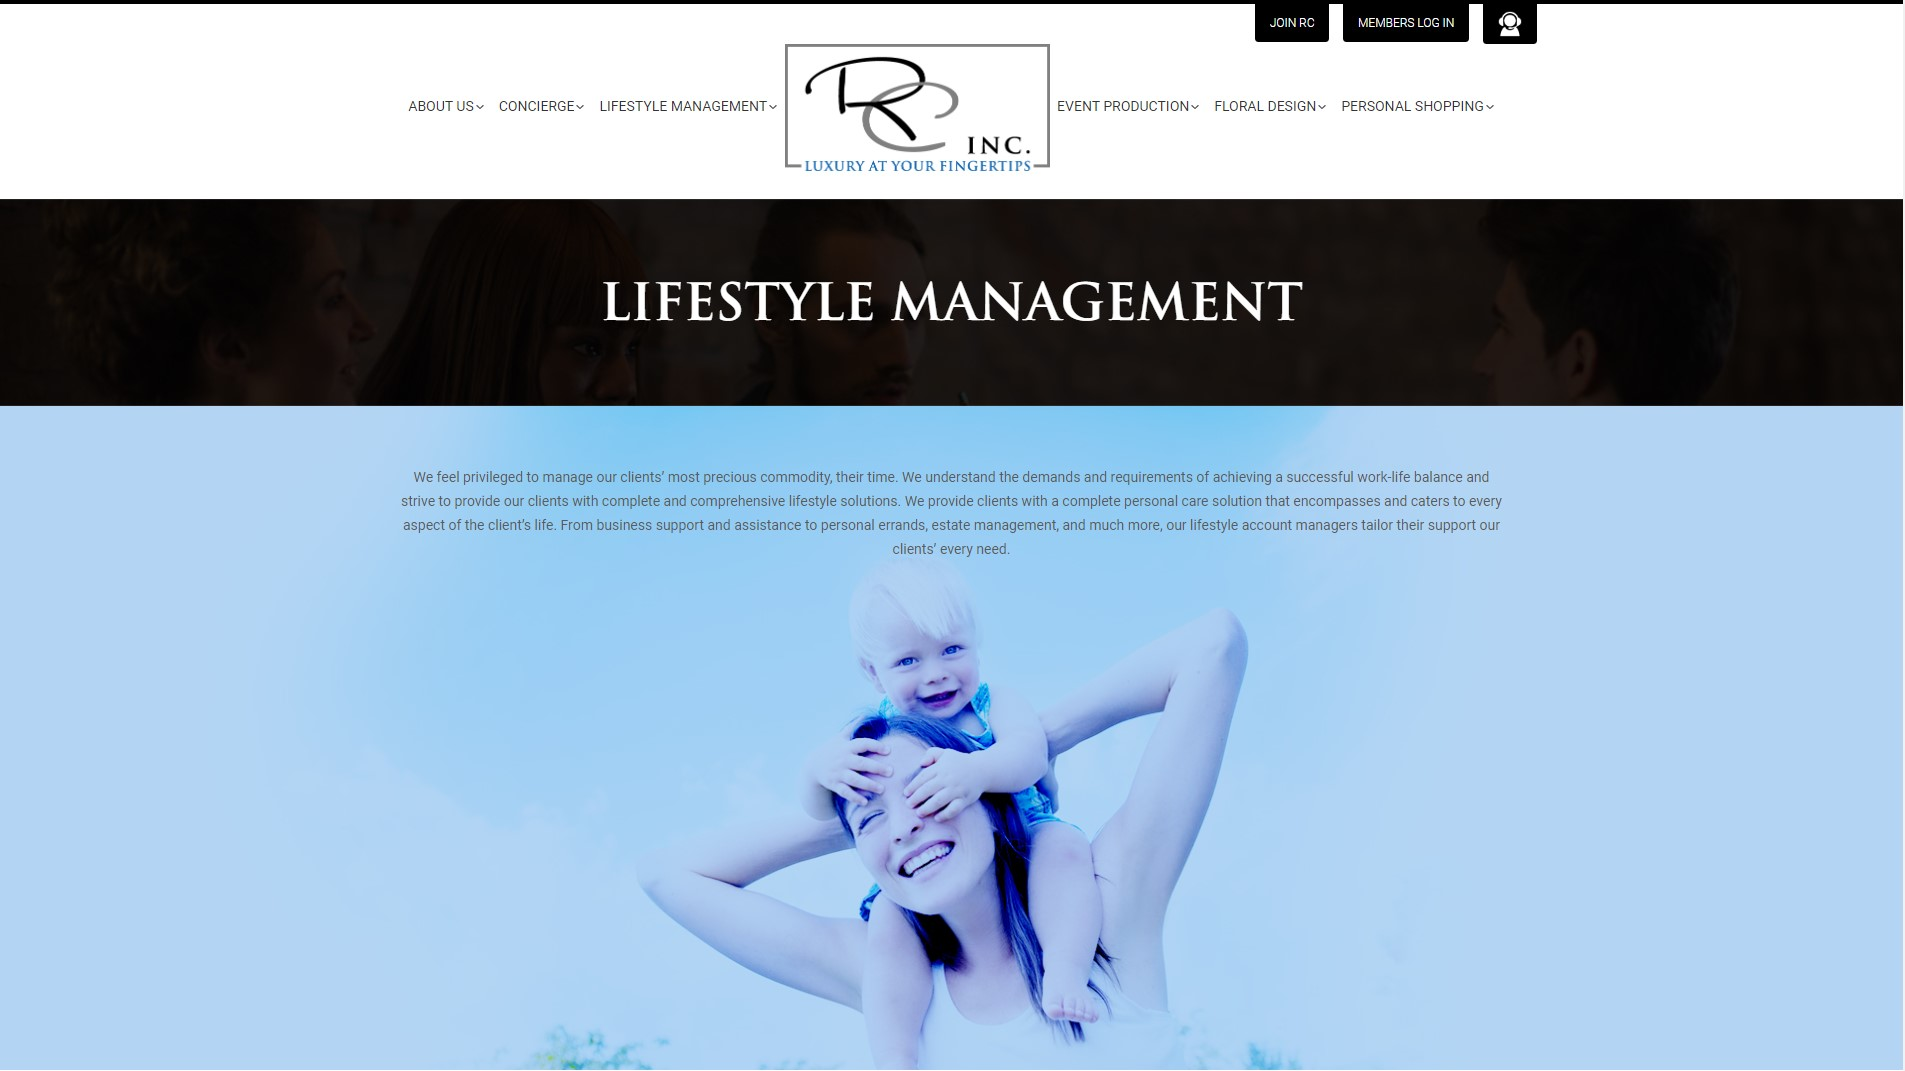 lifestyle management NYC Rinc